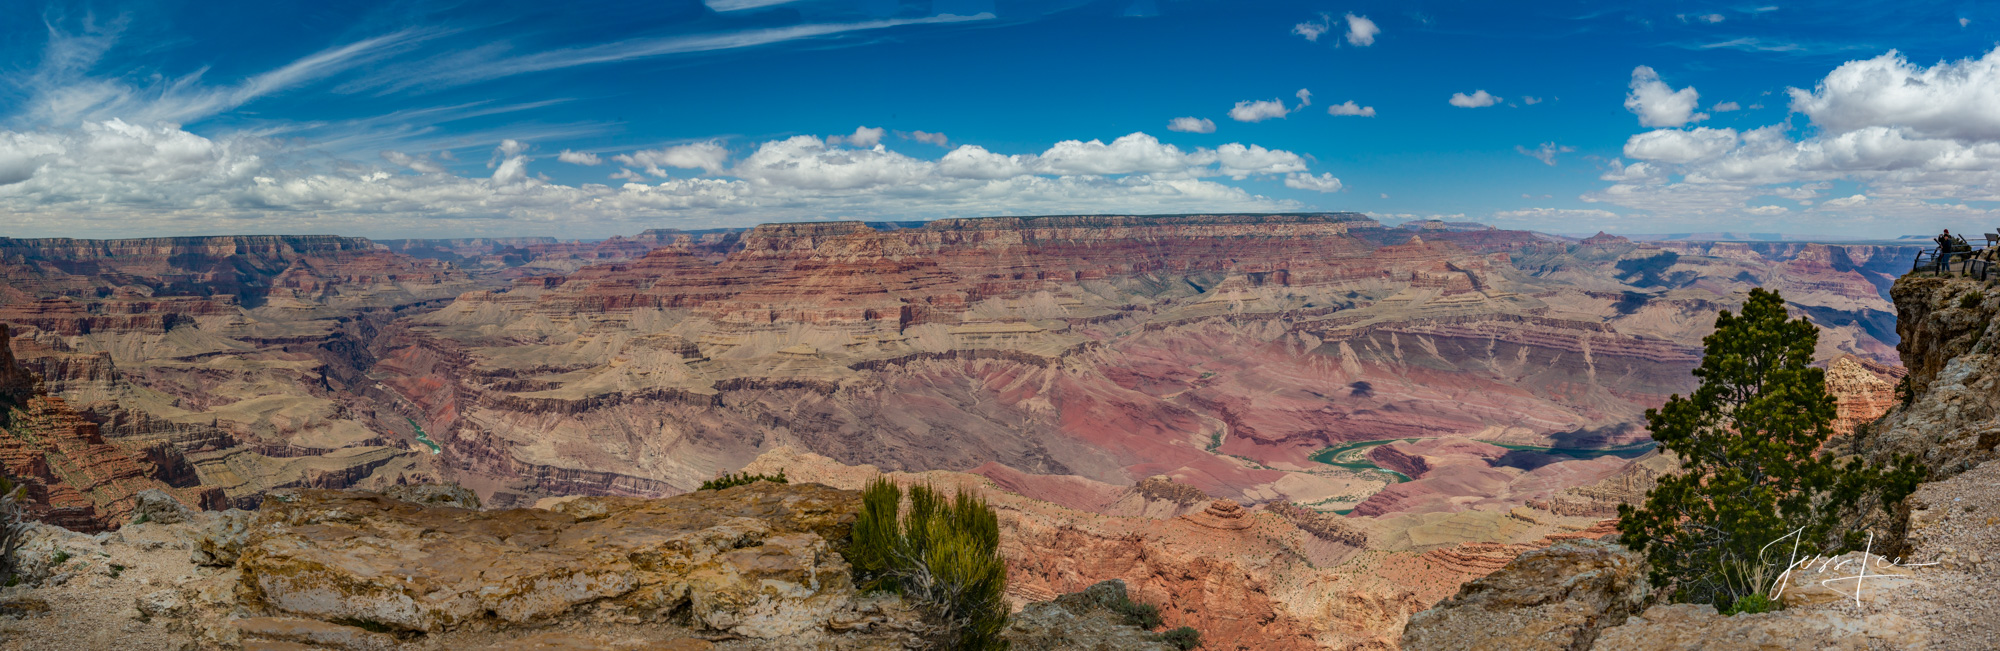 Fine Art Limited Edition Photography of Arizona. Arizona Canyon Panoramic Landscapes.This is part of the luxurious collection...